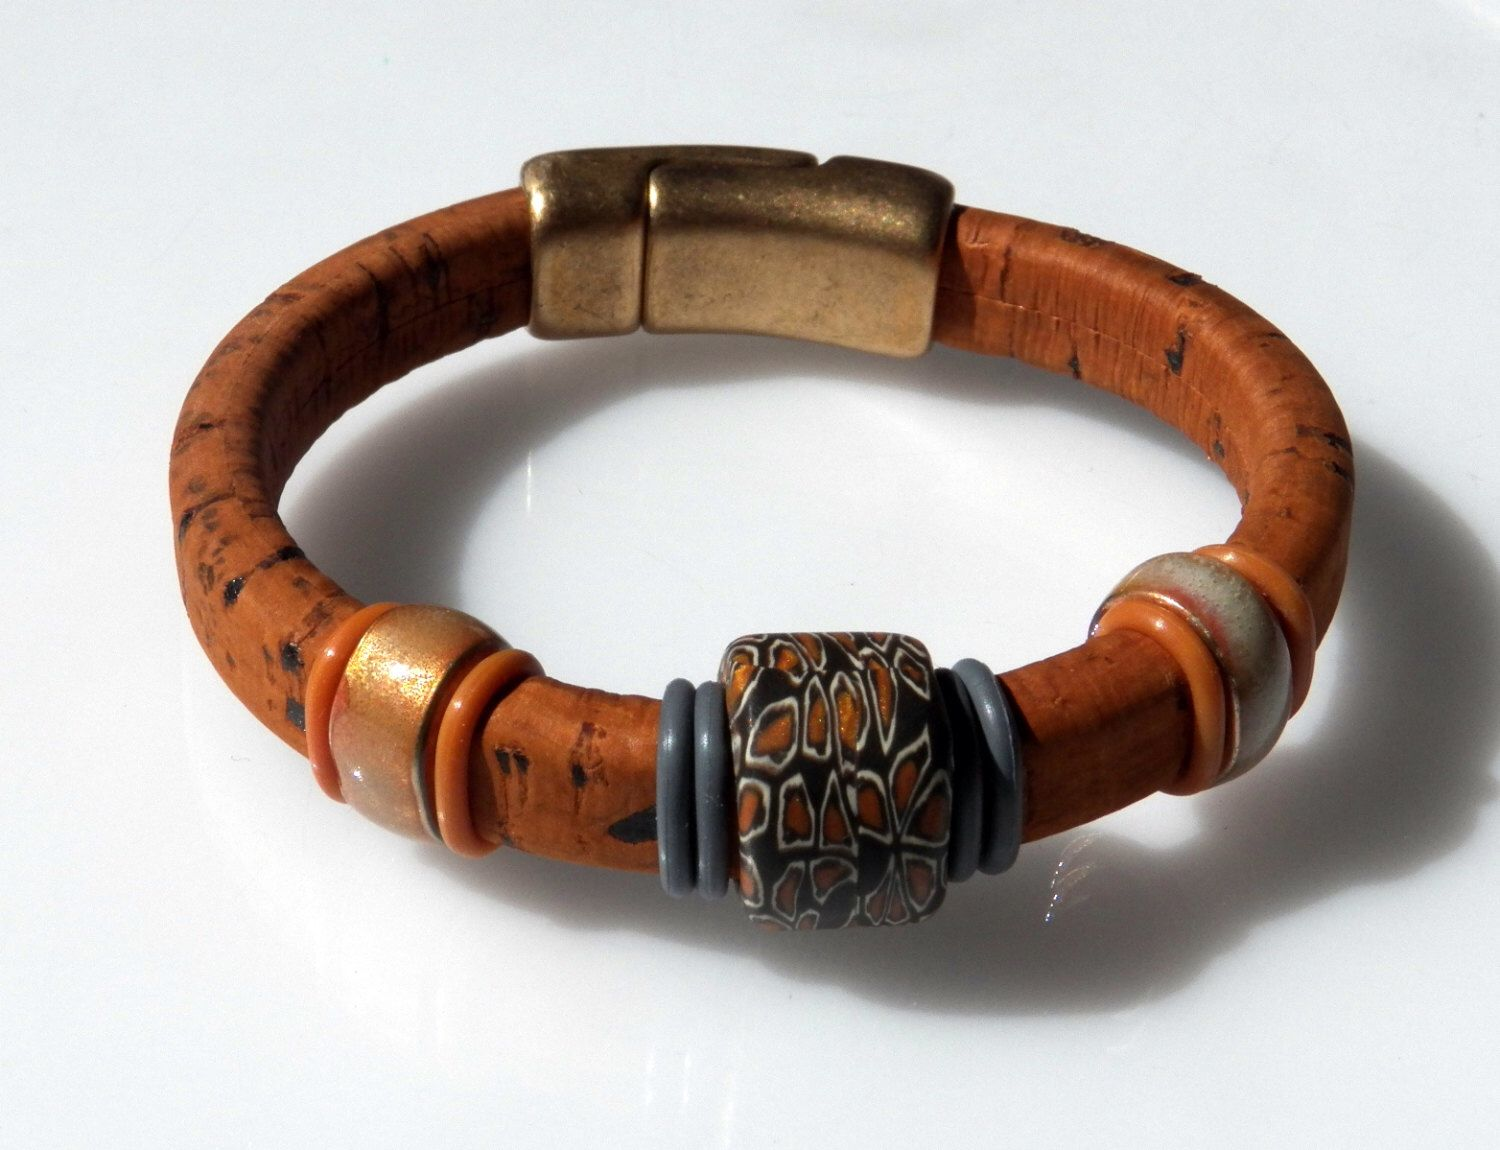 Terra Cotta Cork Bracelet with Enamel Beads, a Hand Made Samunnat Bead and a Brass Magnetic Clasp by KaleidoscopeBaubles on Etsy https://www.etsy.com/listing/197997234/terra-cotta-cork-bracelet-with-enamel